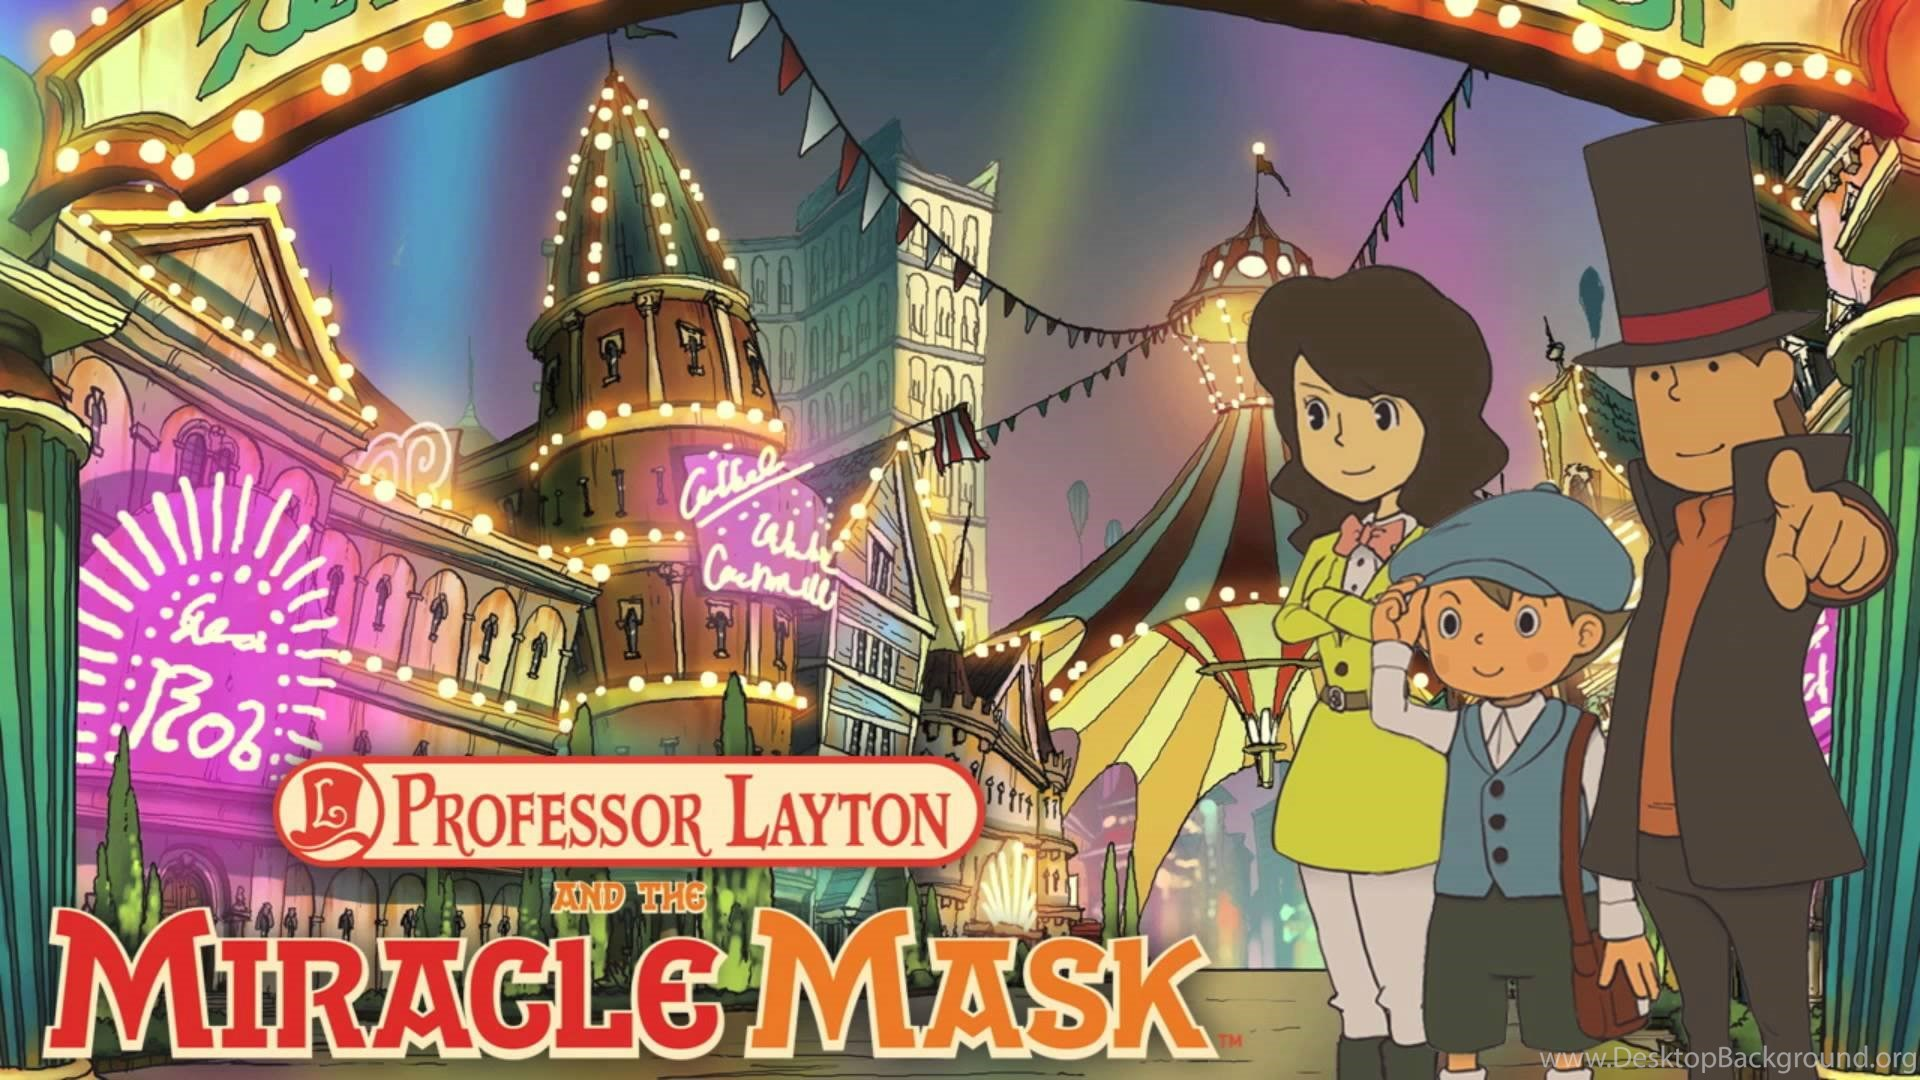 15 Quality Professor Layton And The Miracle Mask Wallpapers Video